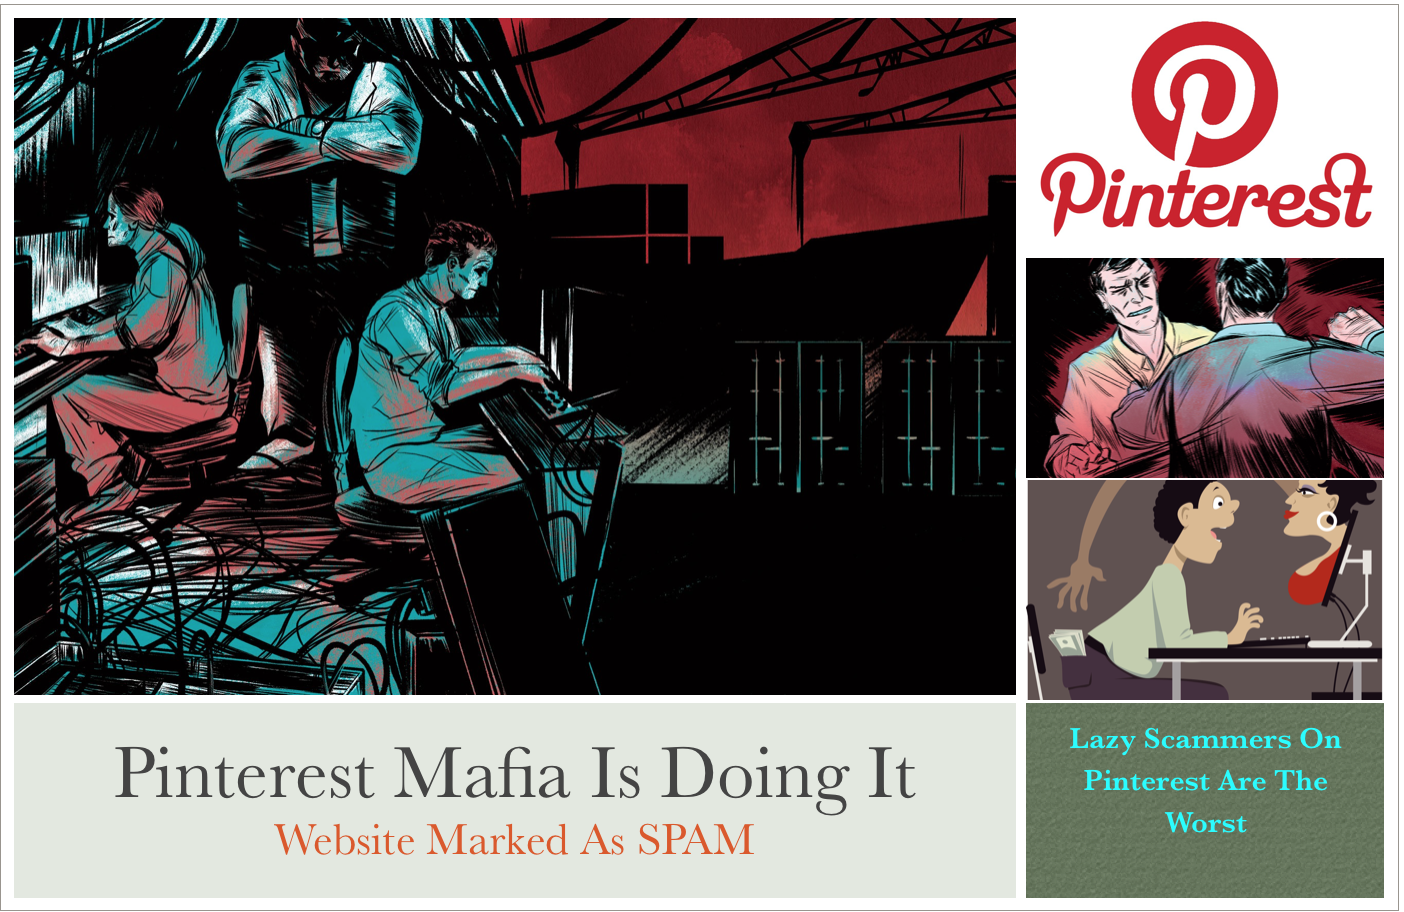 Pinterest Mafia and Scammers getting your site blocked